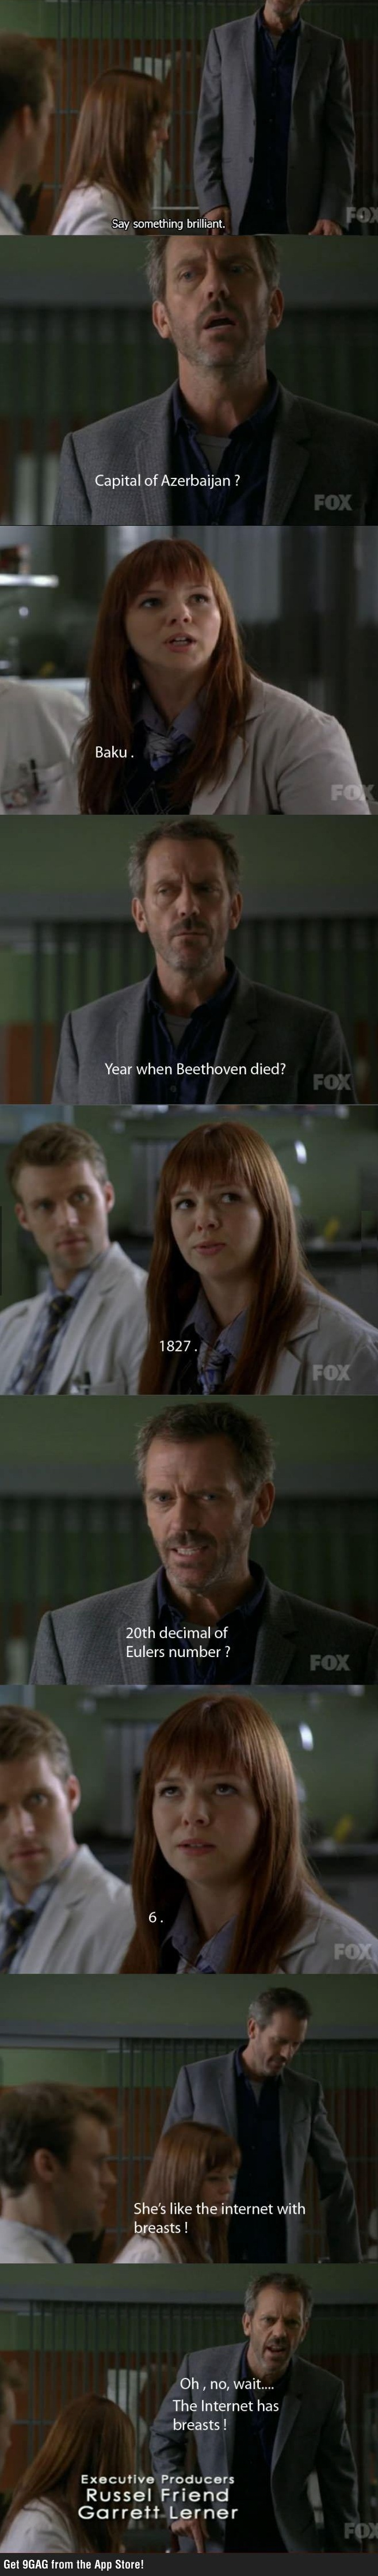 House is awesome once again